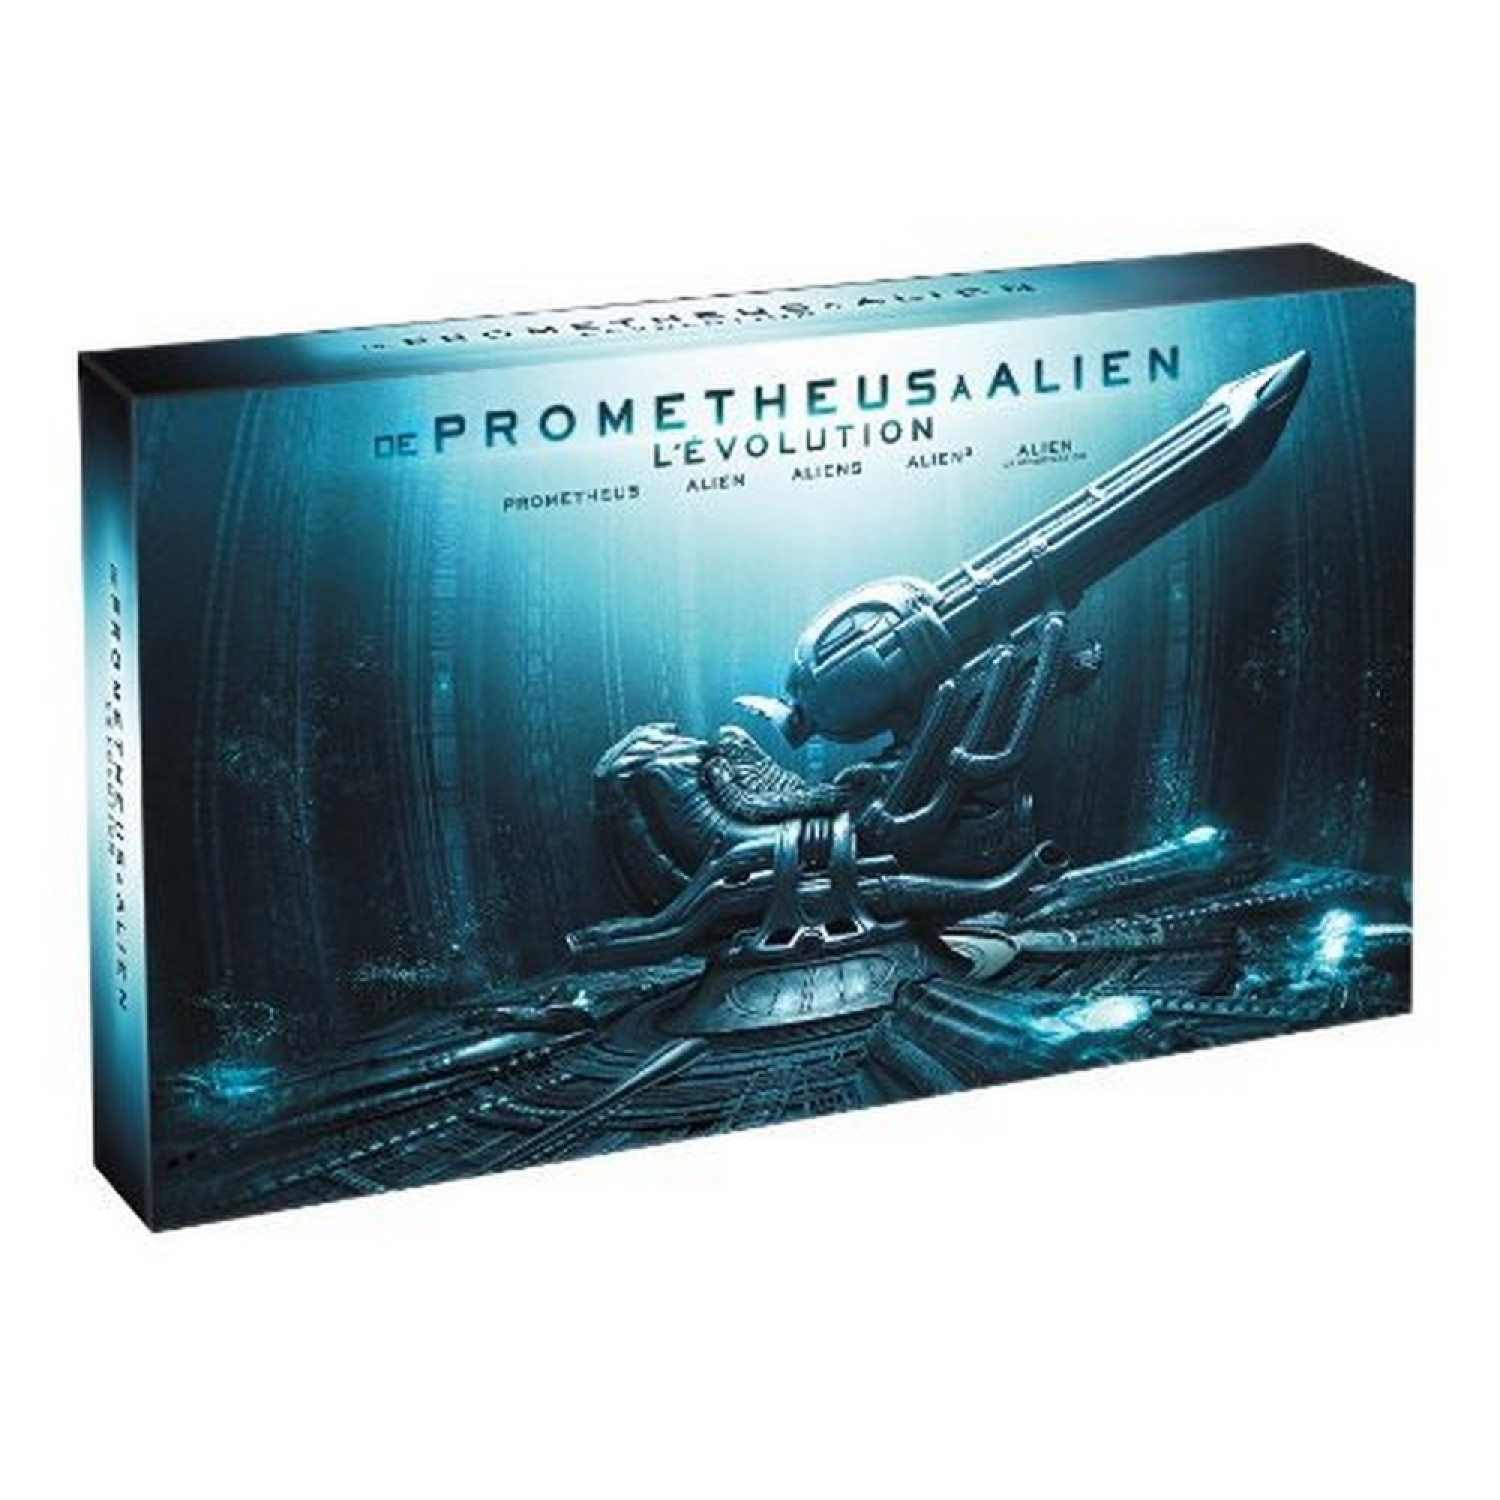 De Prometheus A Alien. L'evolution - Edition Collector 9 Disques [blu-ray 3d]